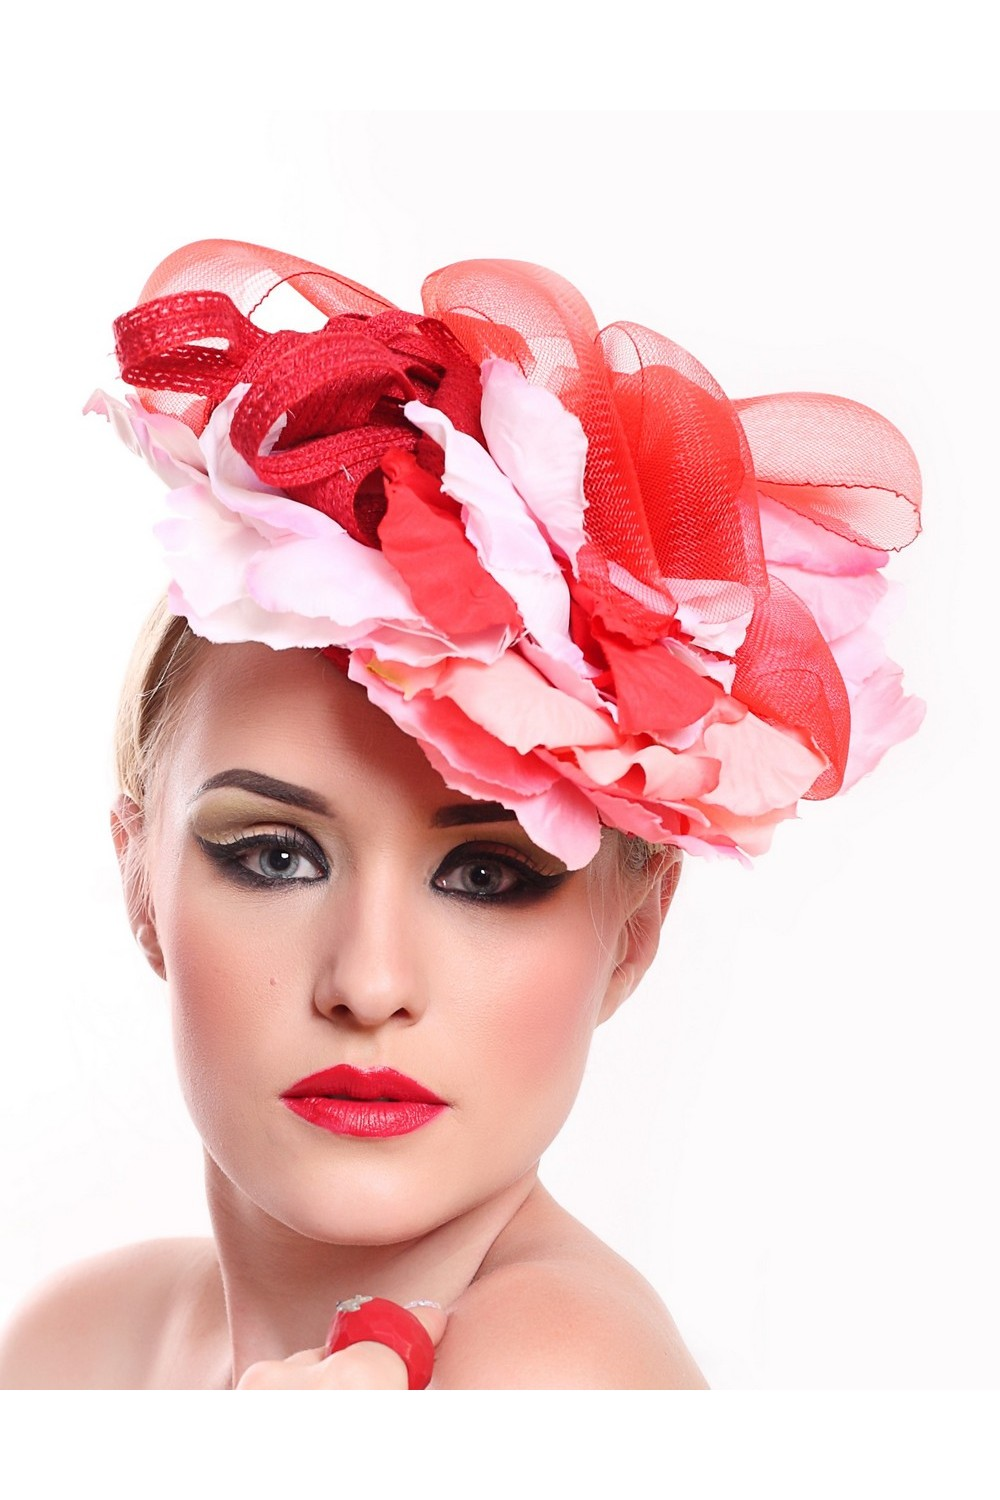 Buy Flower hat for summer evening, Exclusive designer unique stylish hat for the holiday